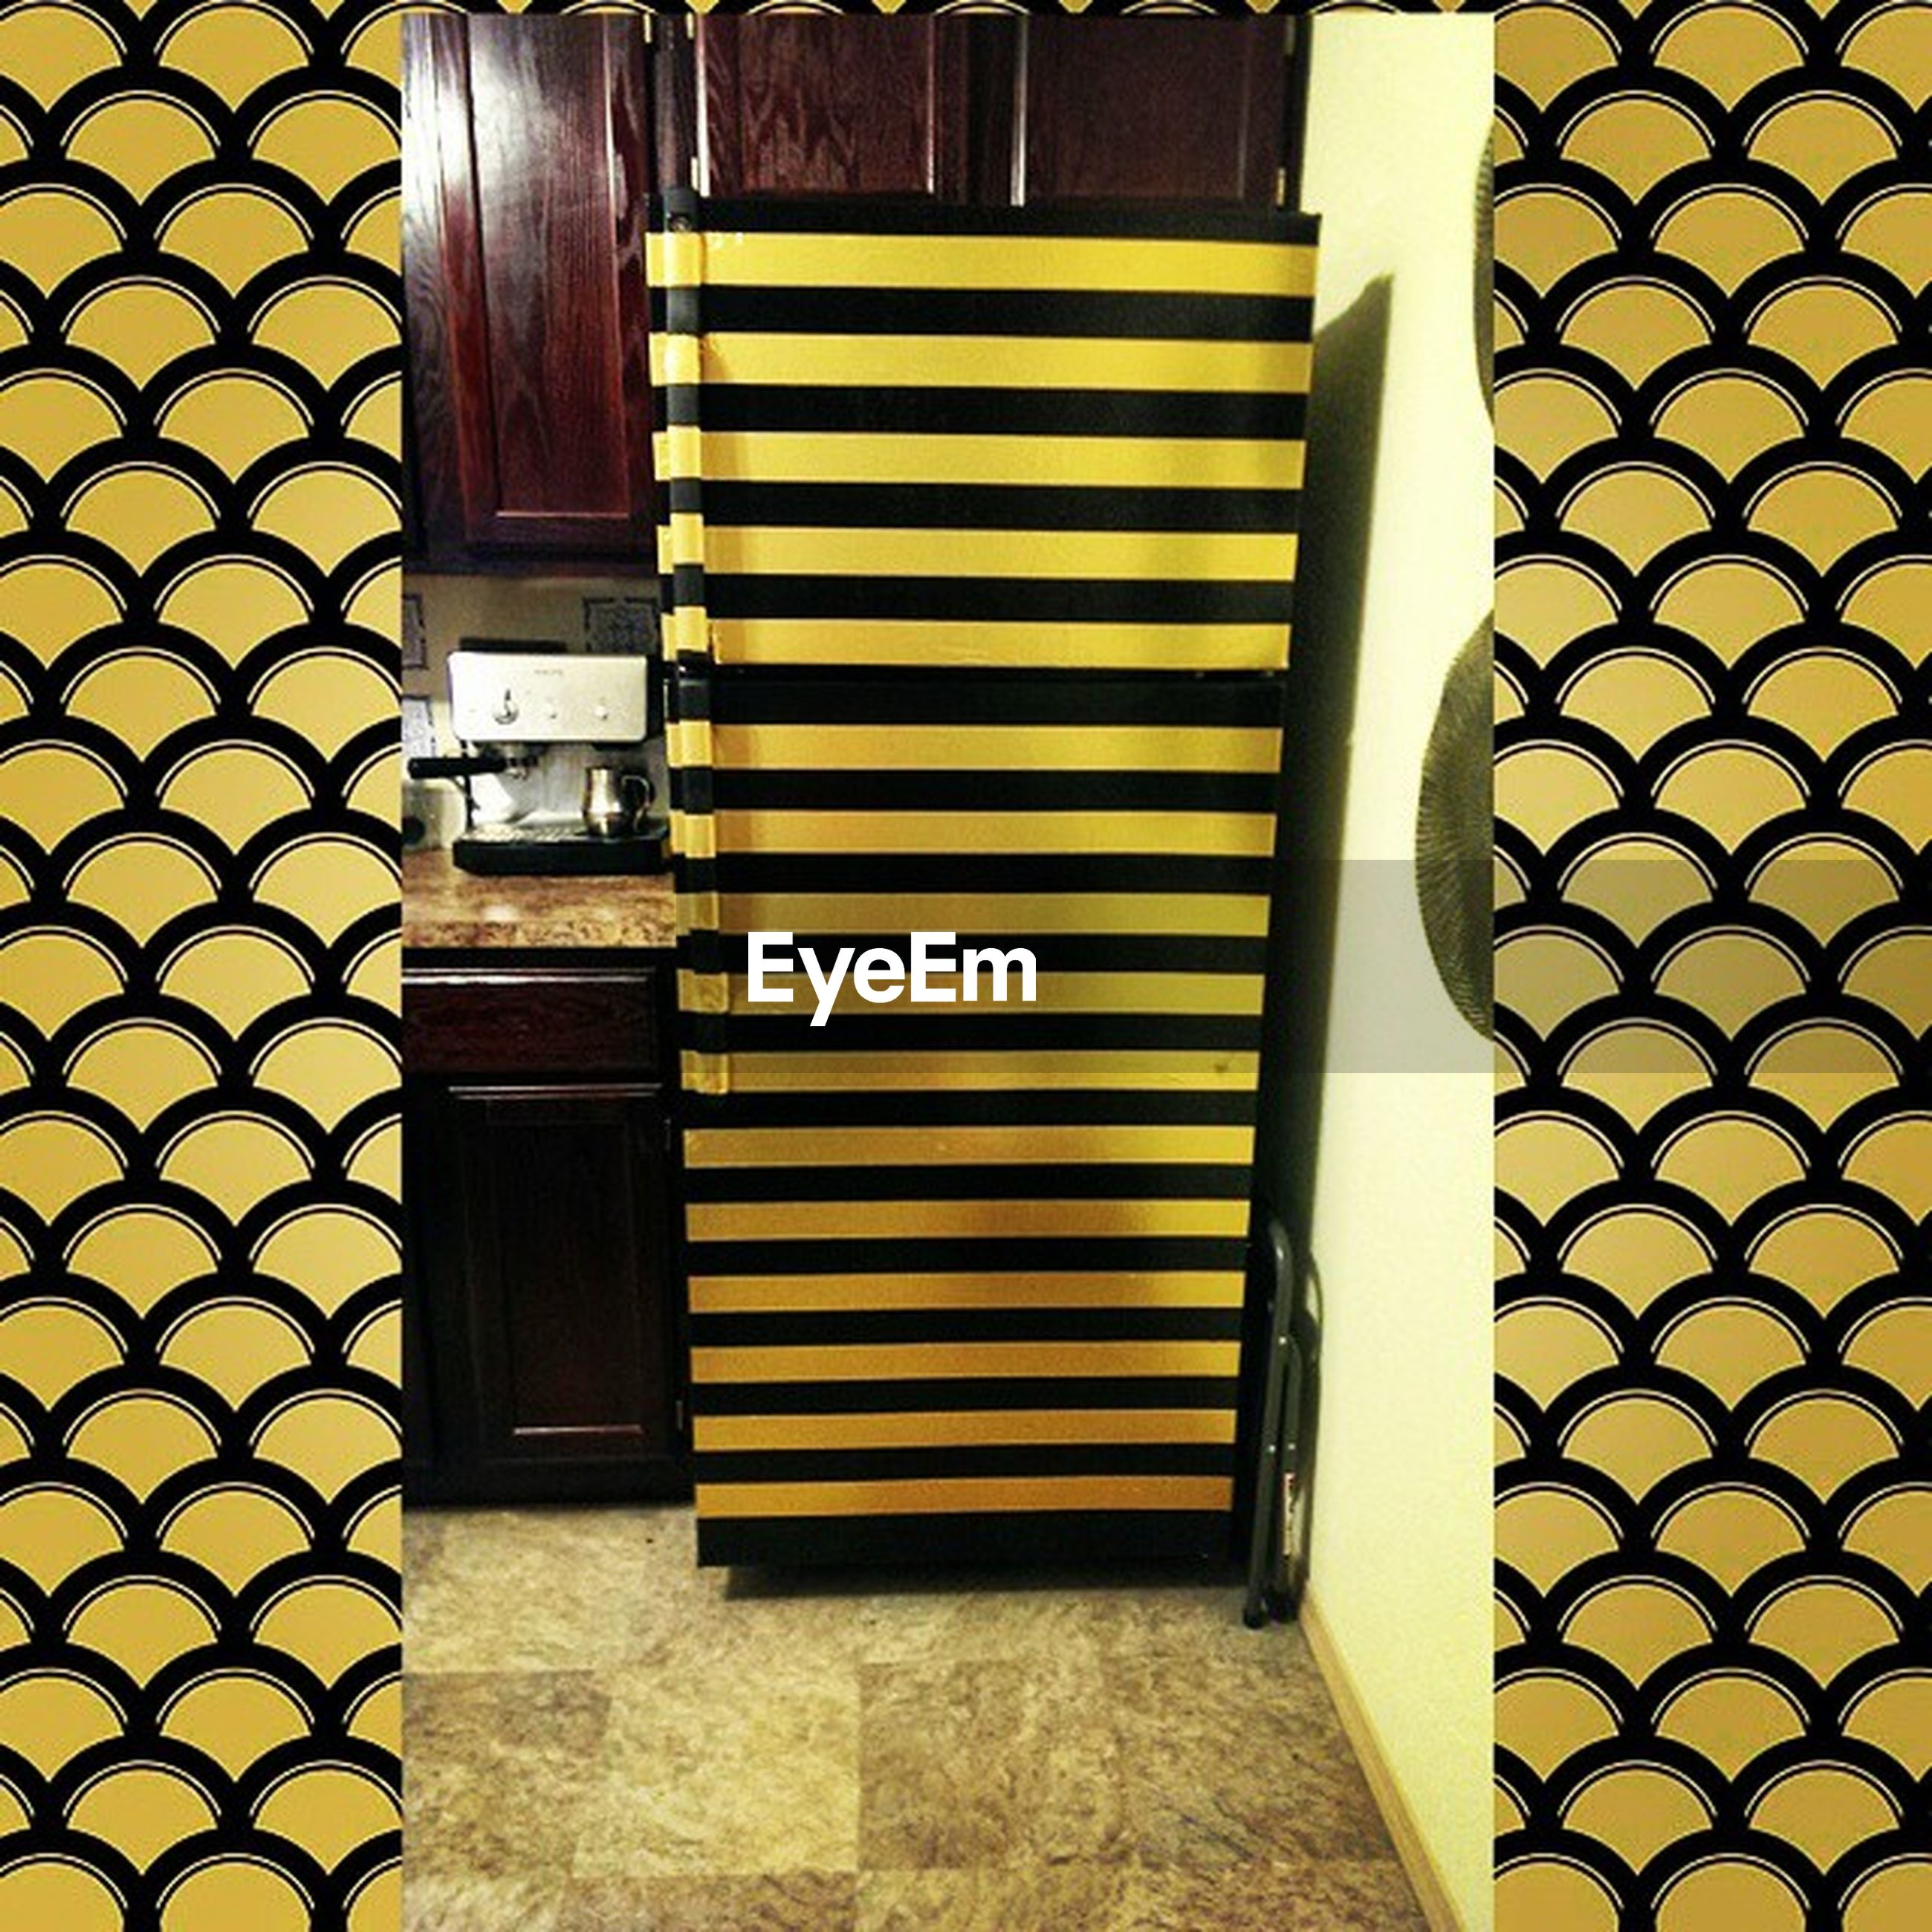 built structure, closed, architecture, building exterior, yellow, door, pattern, wall - building feature, safety, protection, metal, wall, brick wall, security, no people, house, outdoors, tile, day, window